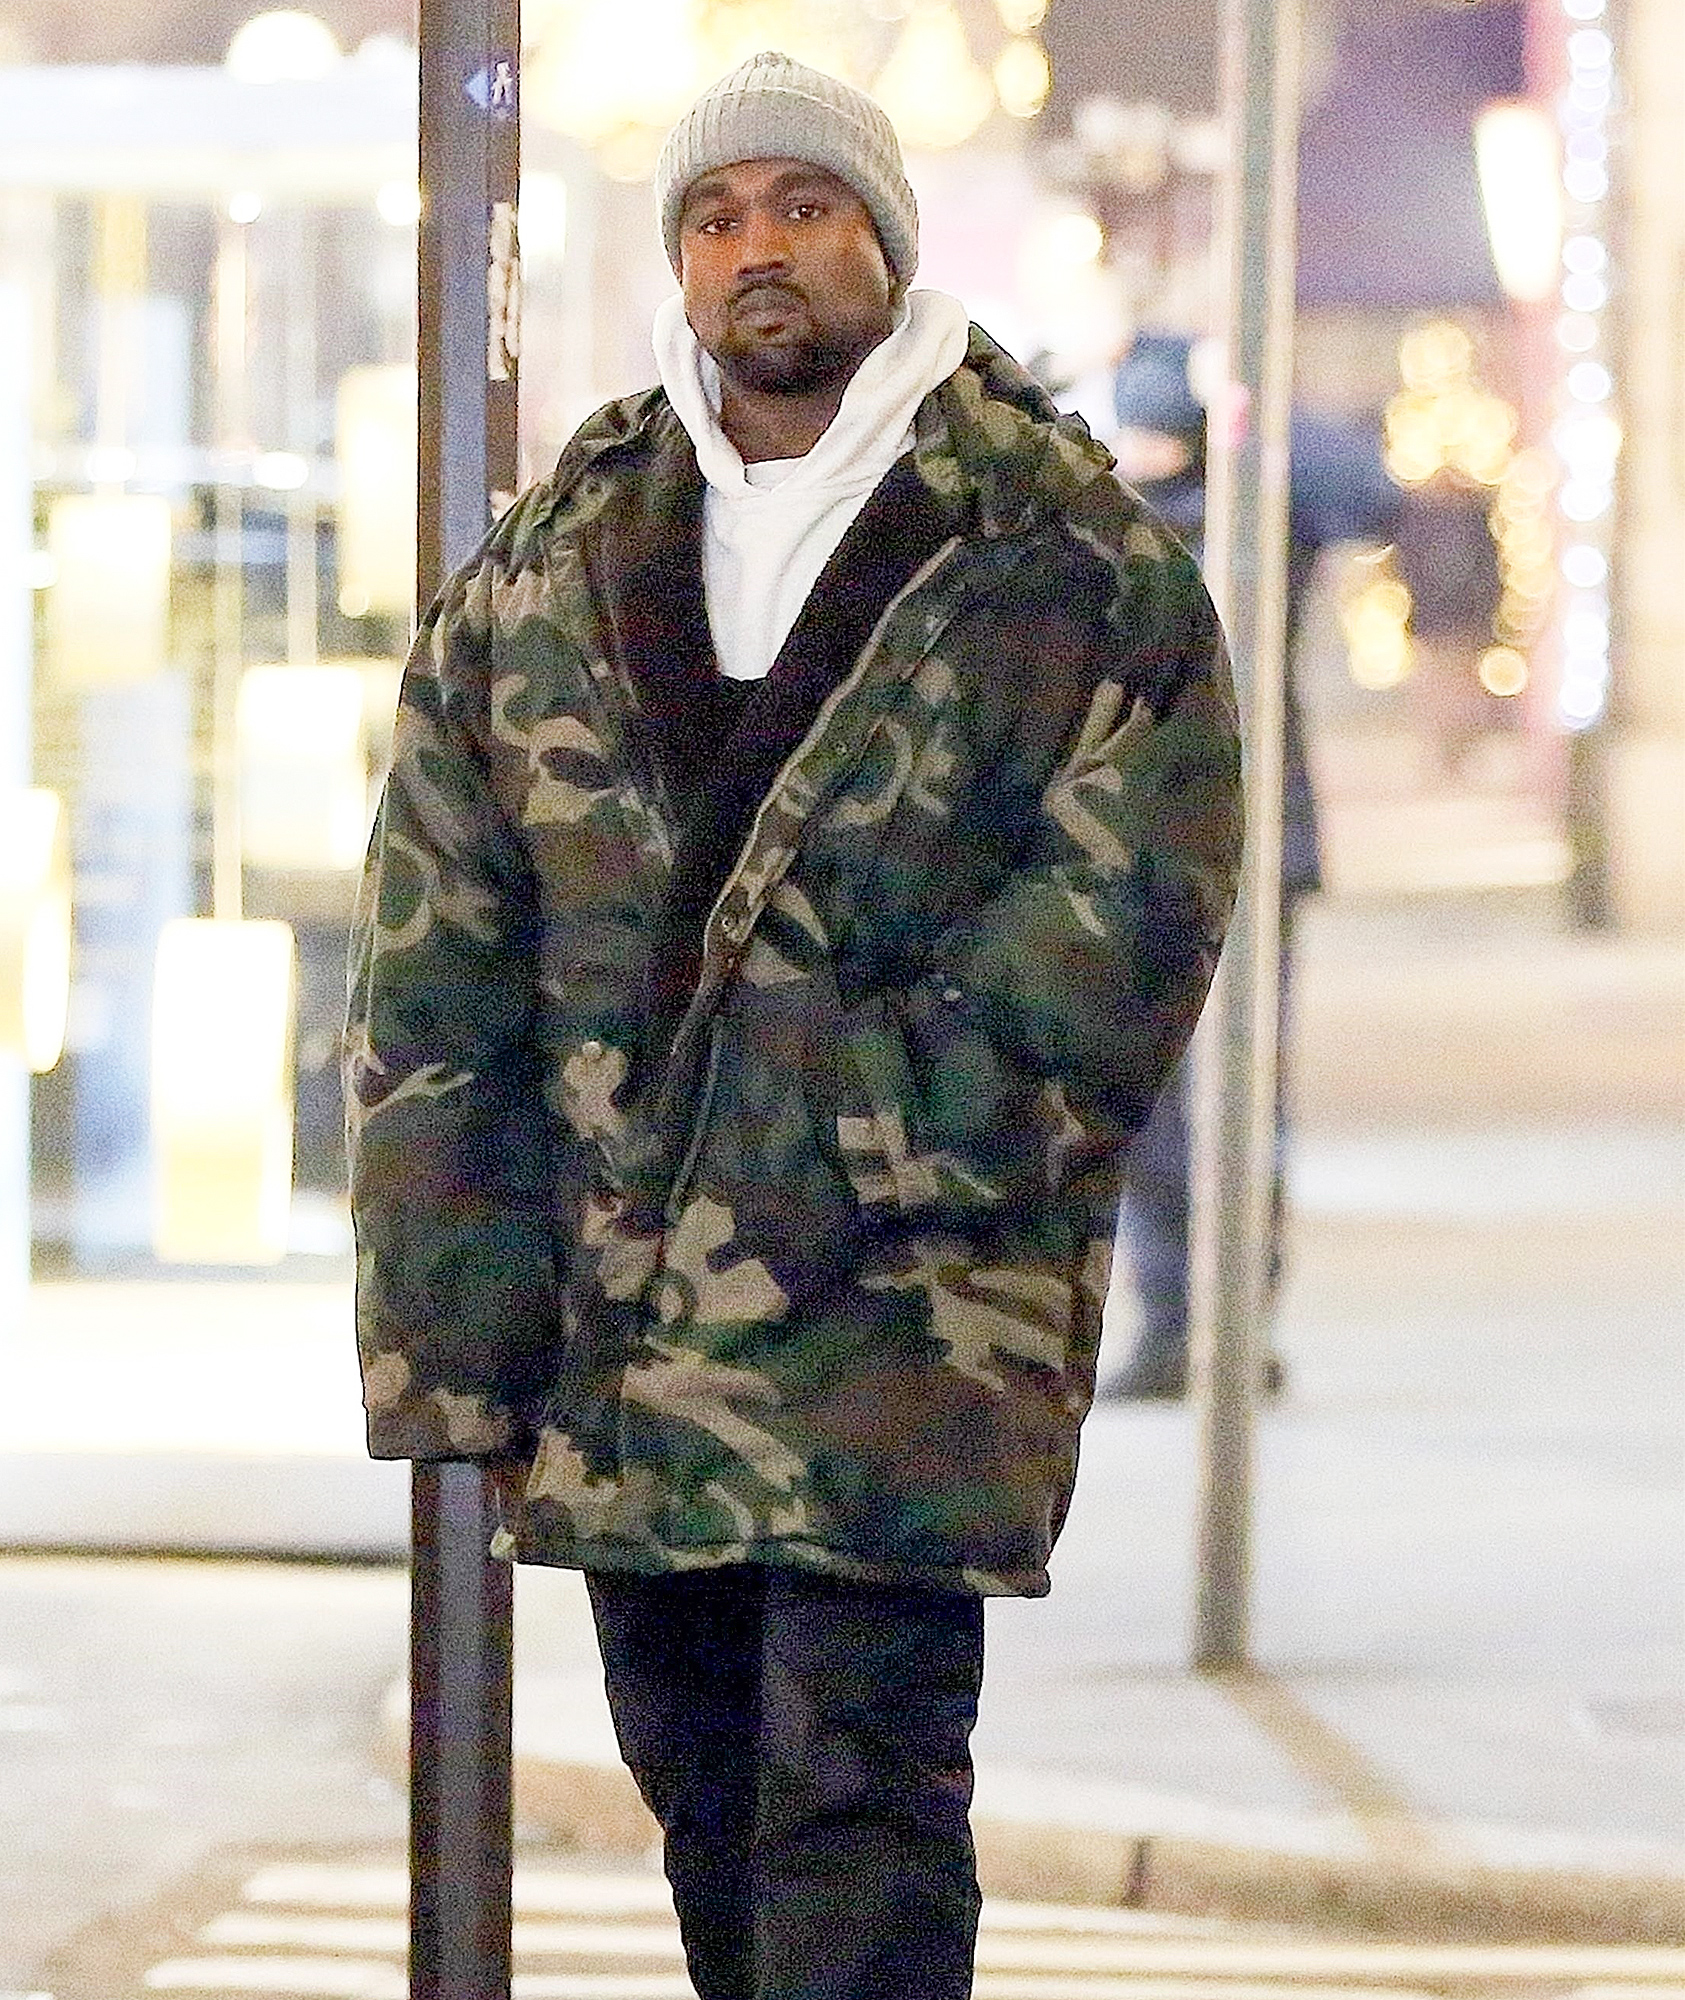 *EXCLUSIVE* Kanye West spends the day in Milan working